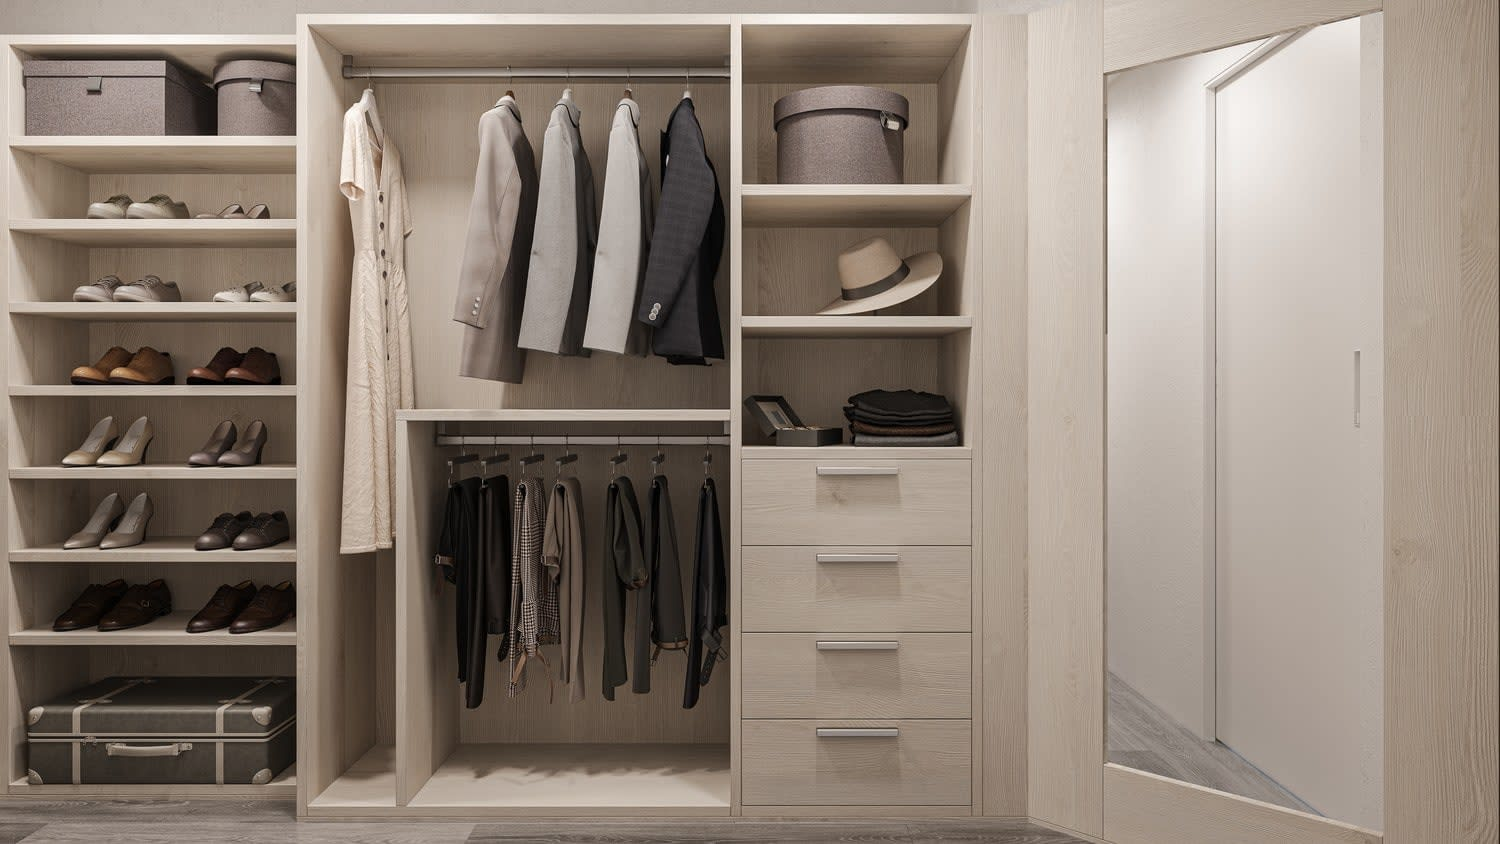 rendering of a parklane walk-in wardrobe design by eggersmann including shoe storage, hanging space, and built-in drawers